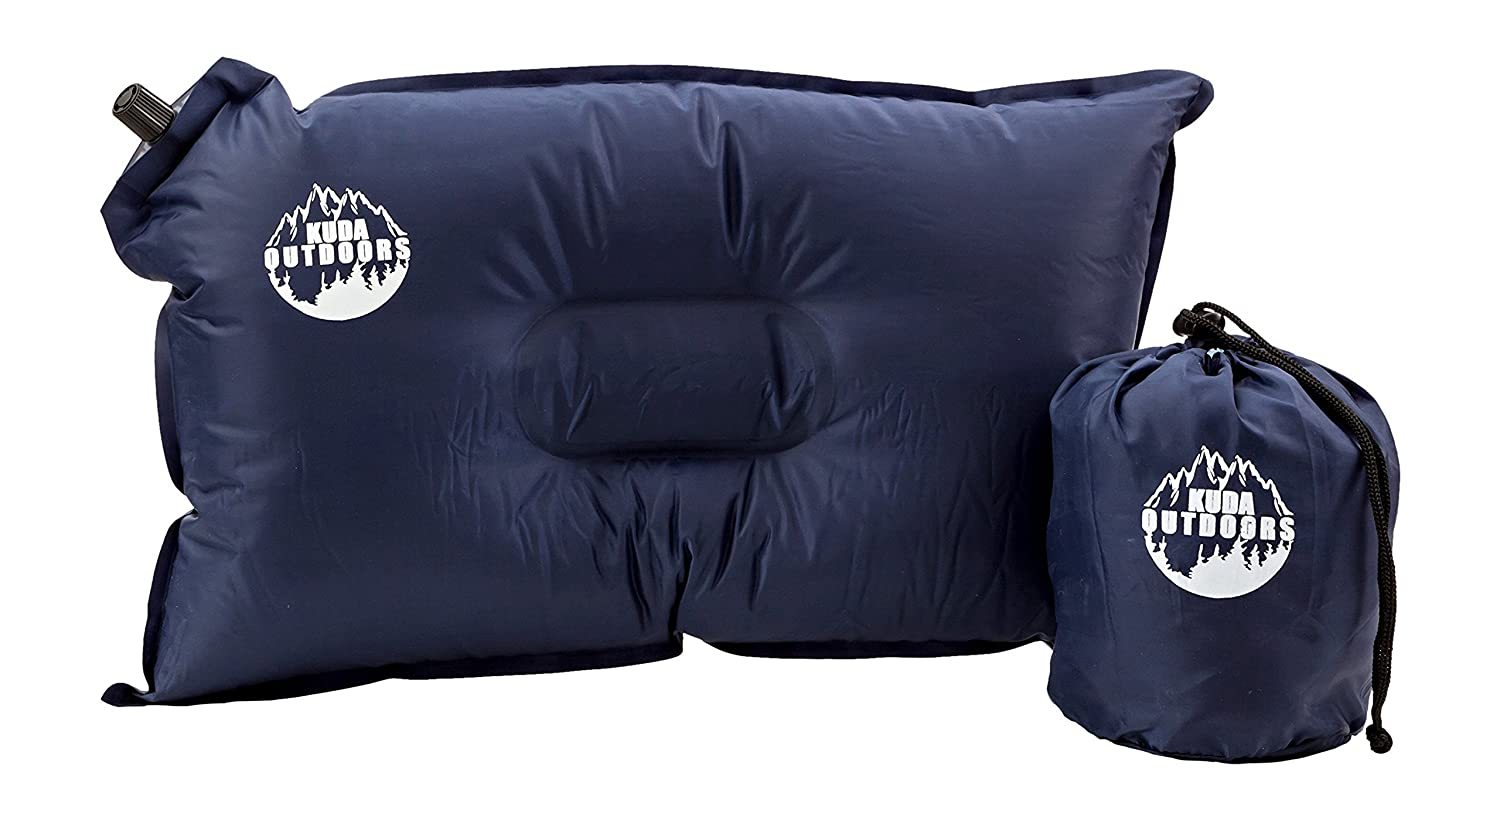 The Best Camping Pillow 2